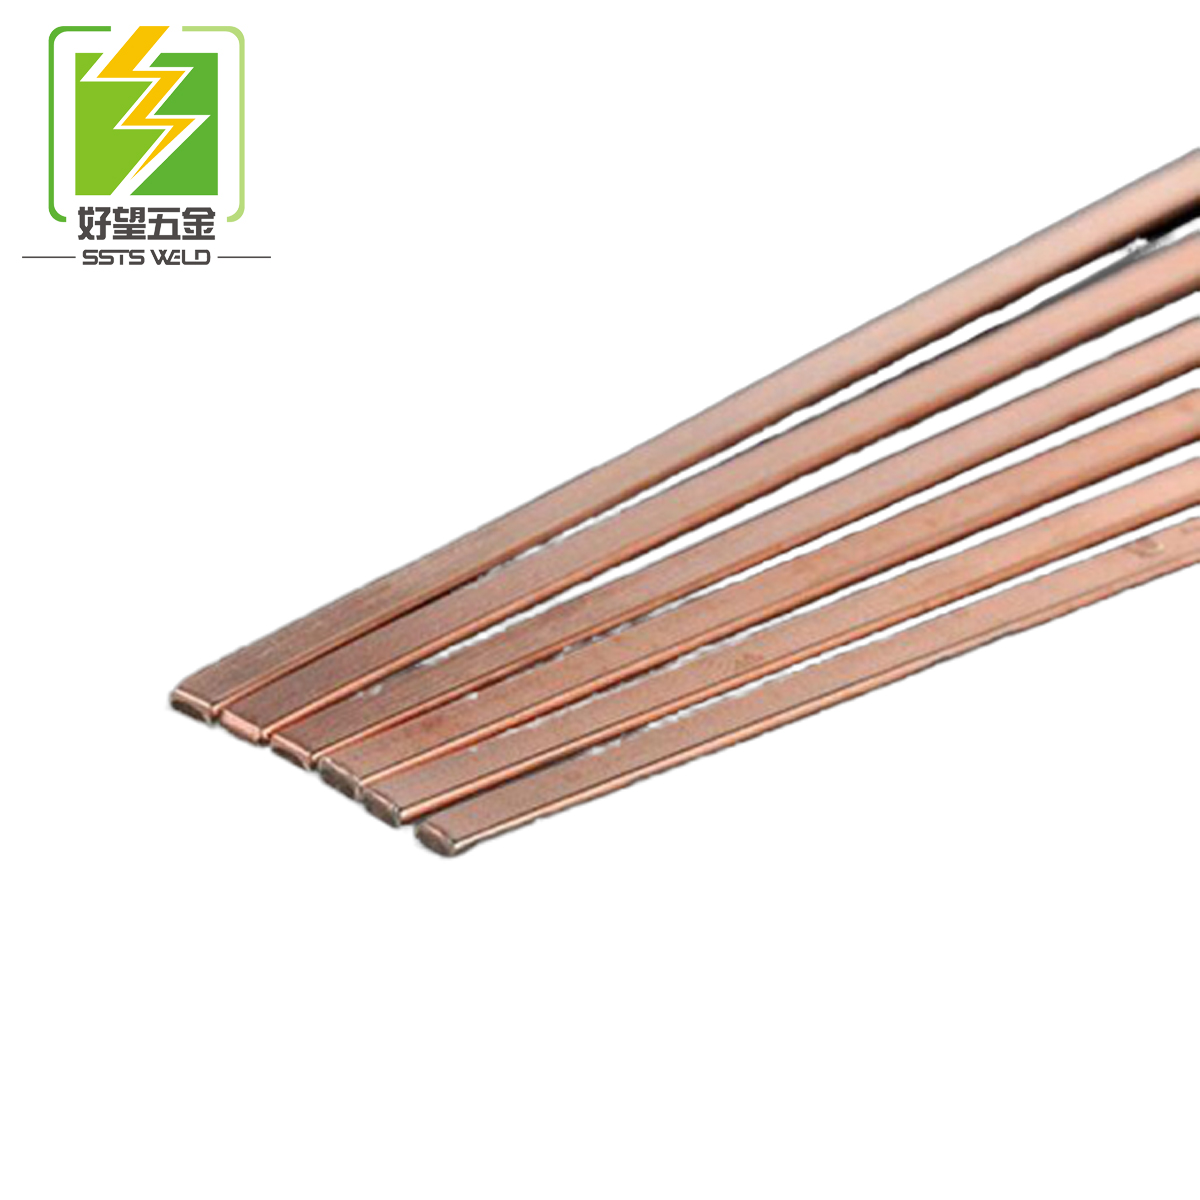 15% Silver Phos/Copper brazing alloy rod welding rod/wire